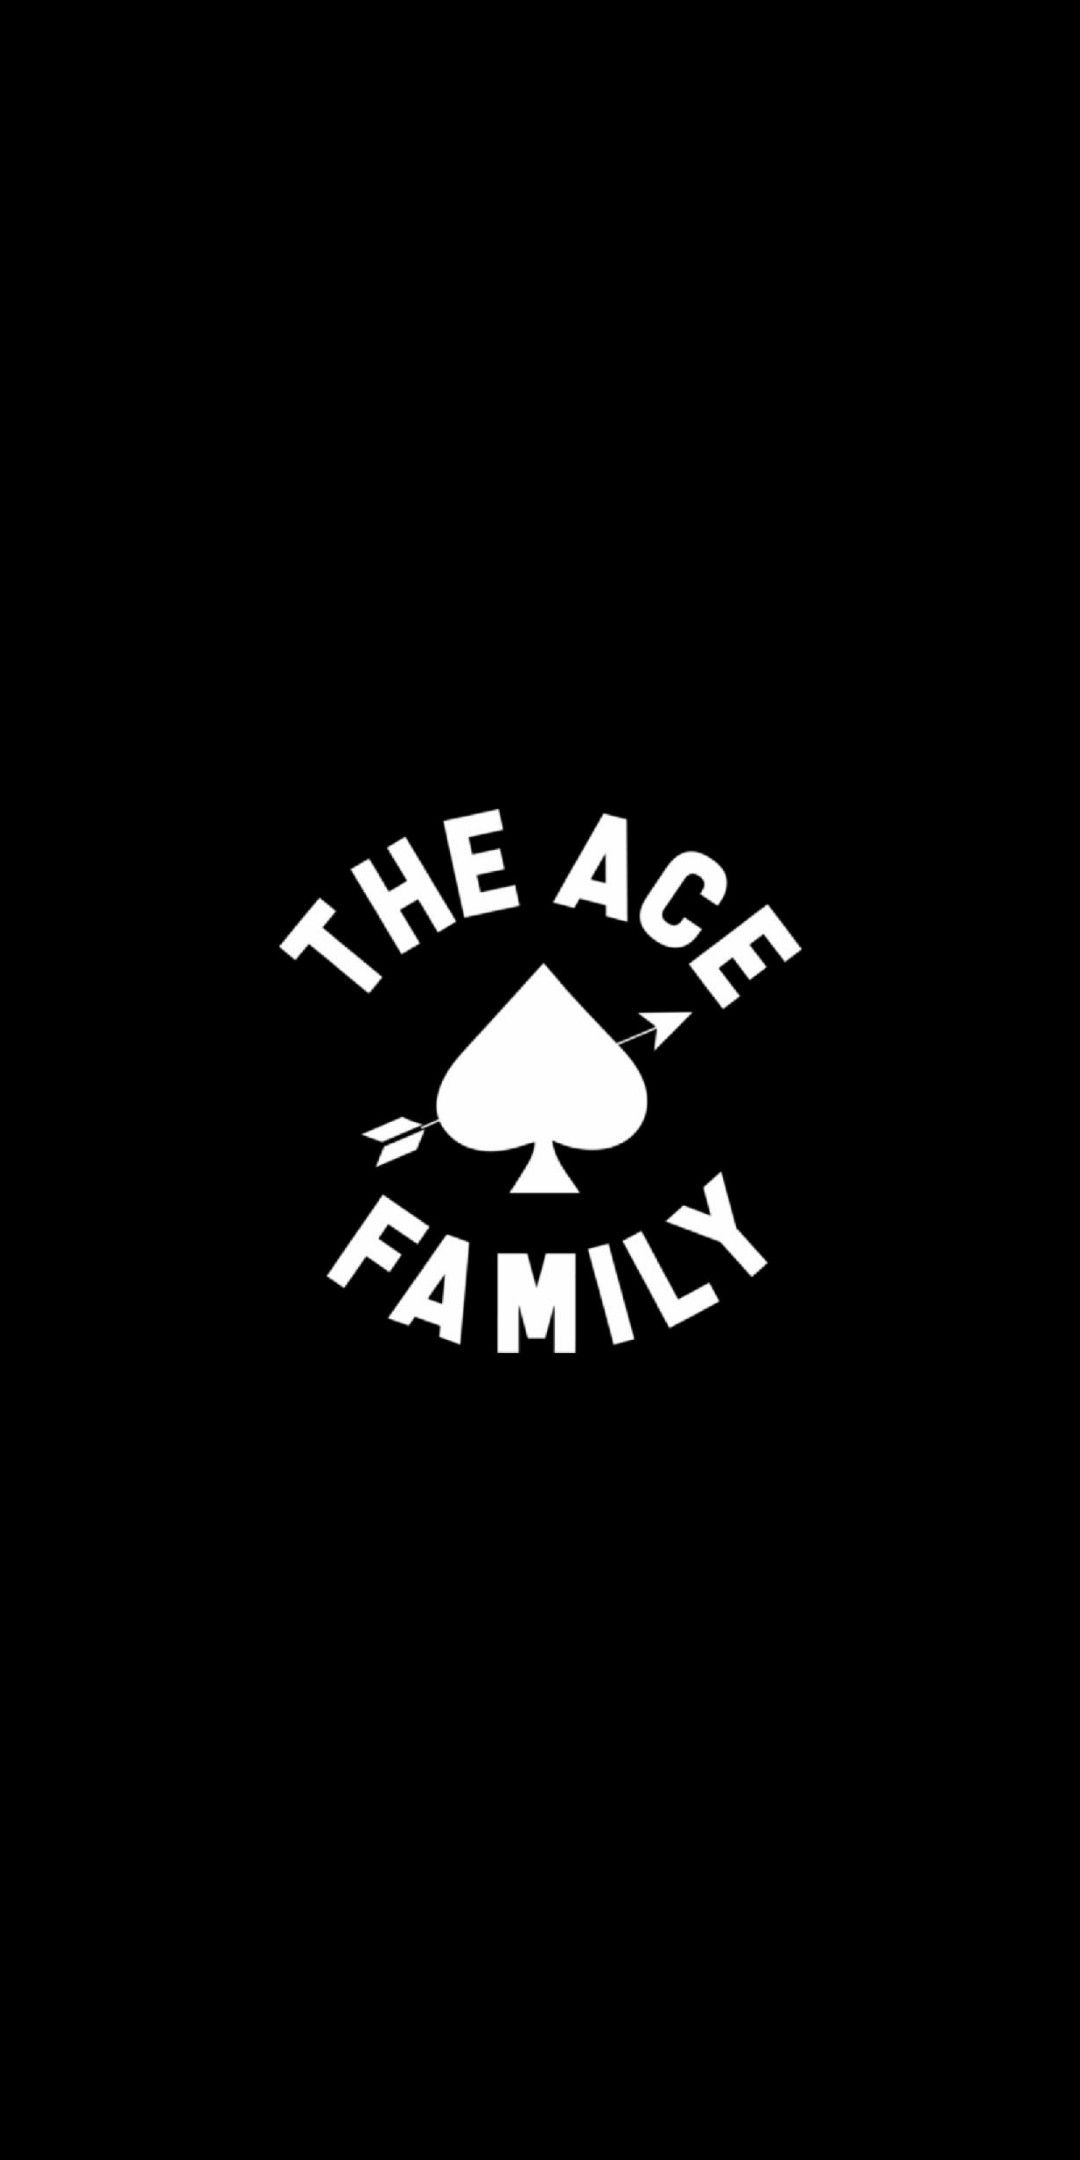 Familyovereverything Ace Family Wallpaper Ace Family The Ace Family Youtube